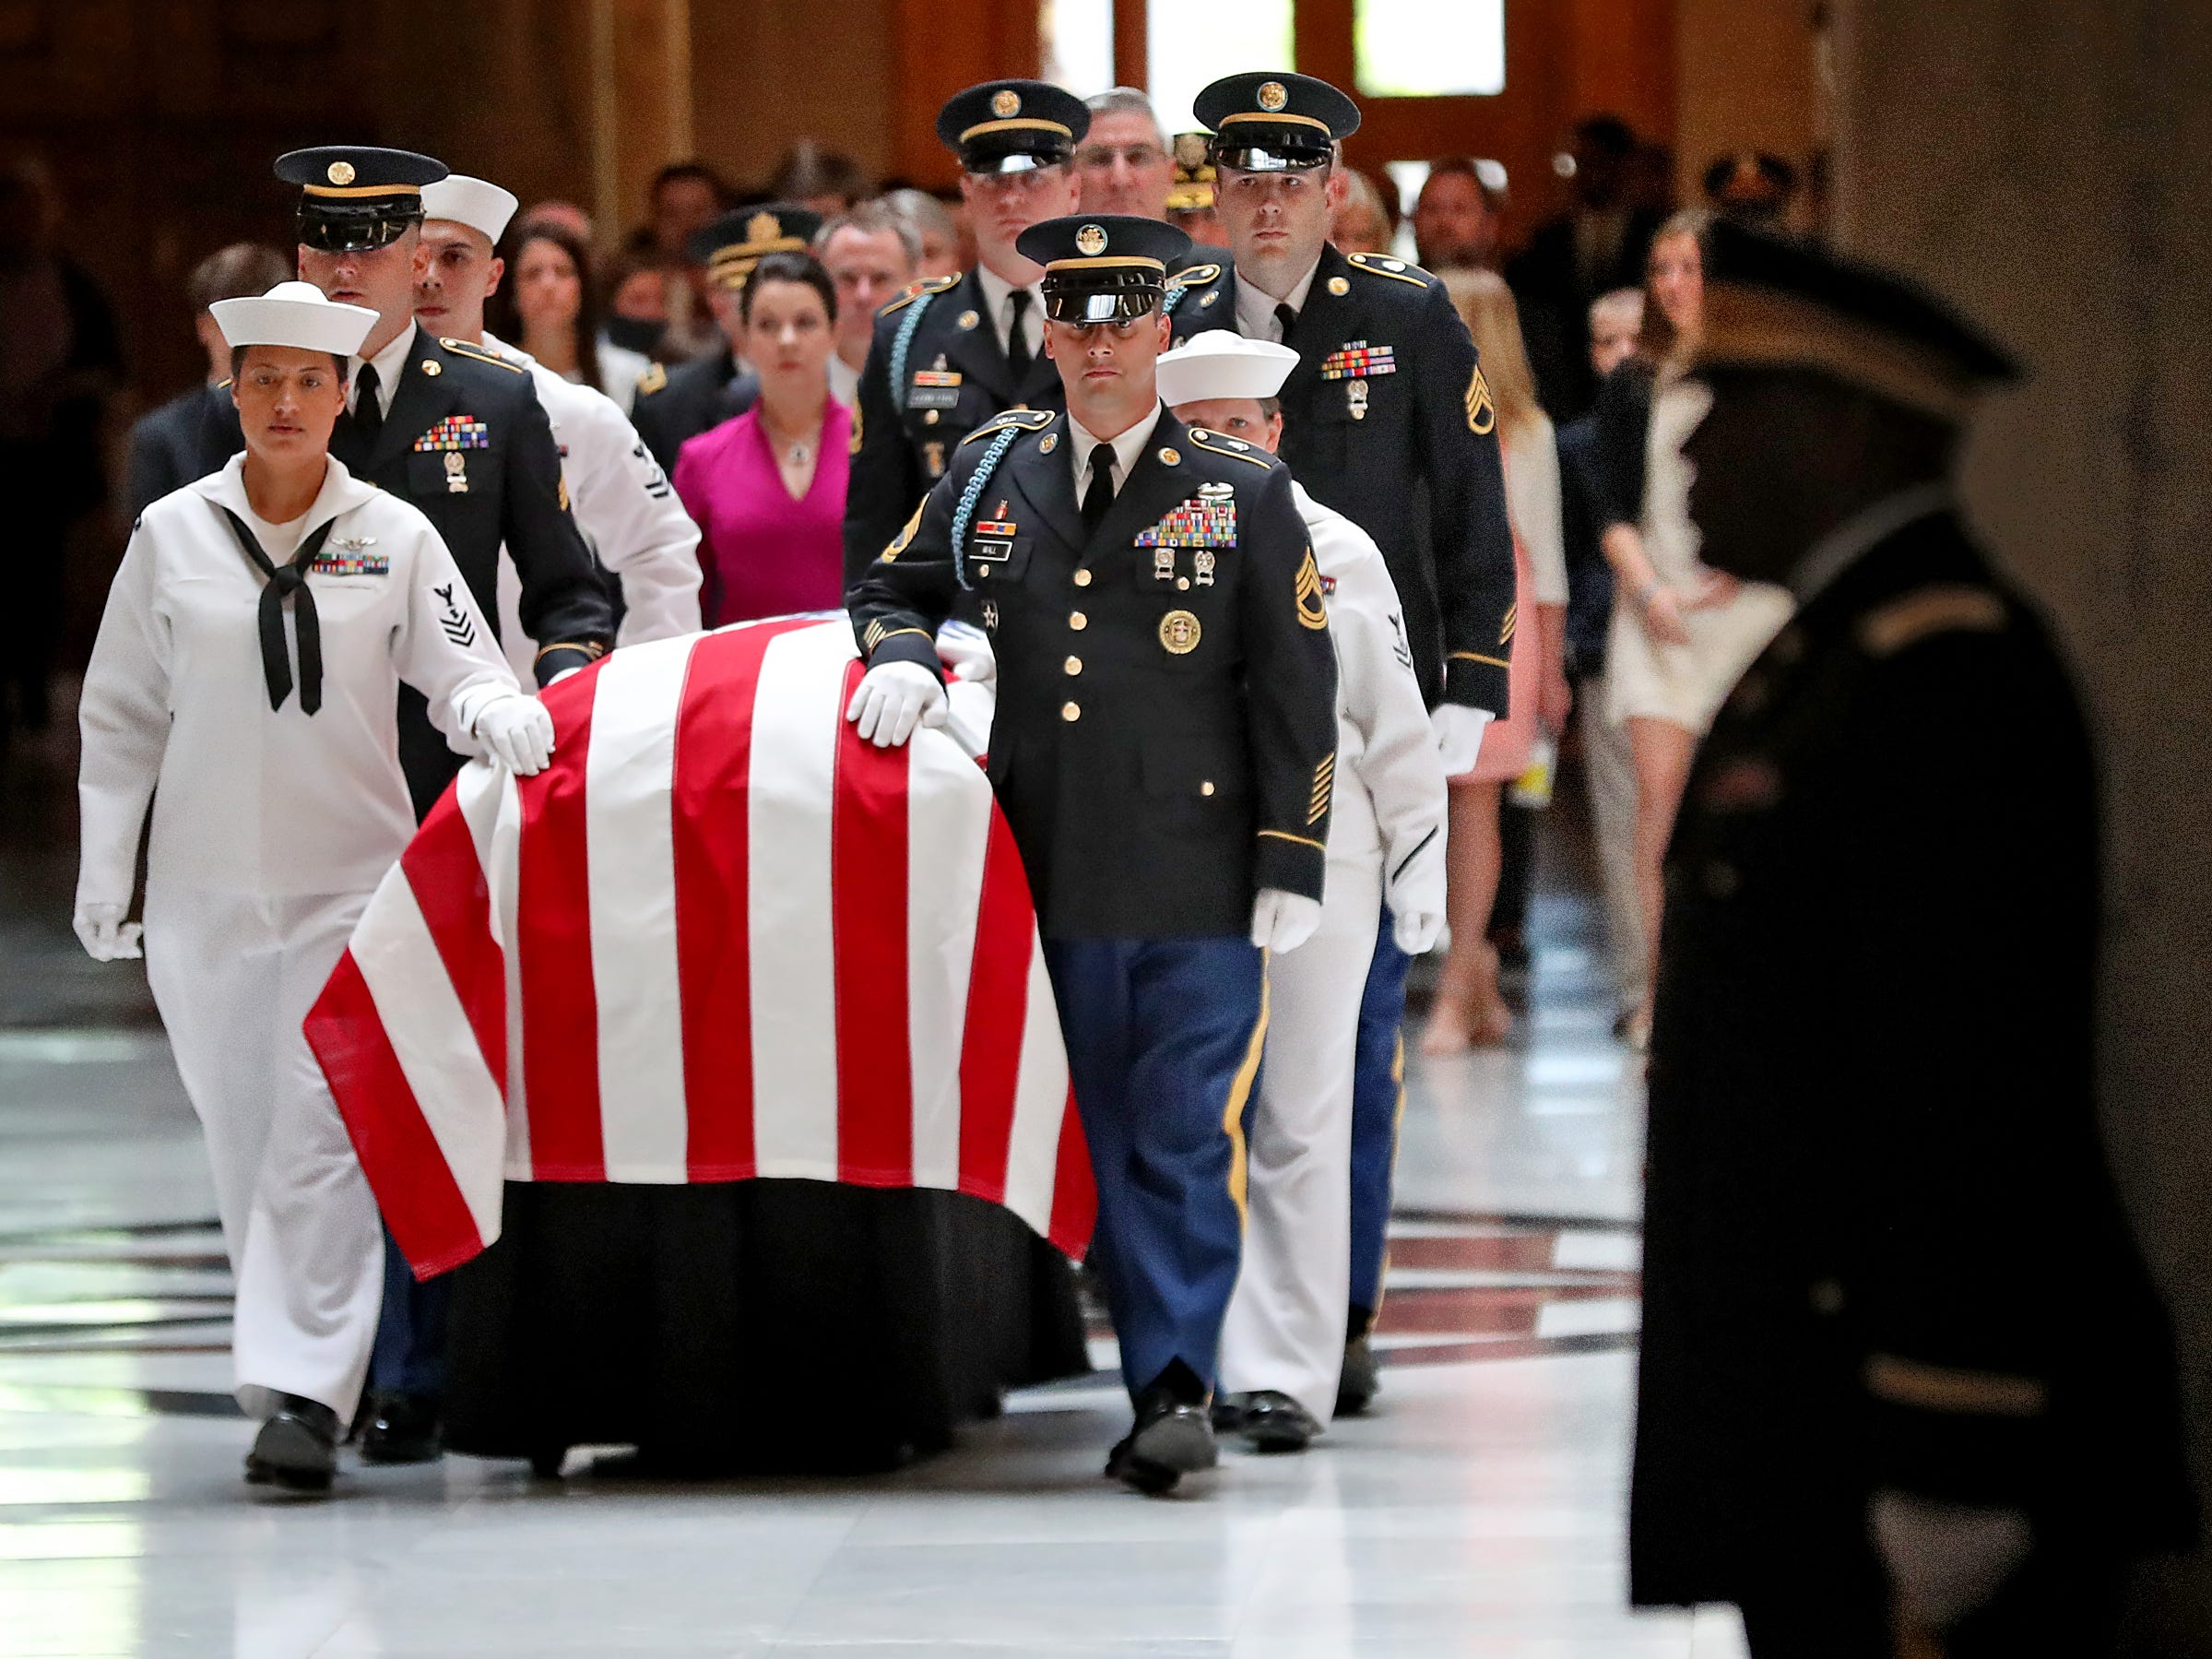 Former Senator and Mayor Richard Lugar is brought into the Statehouse where he lies in state, Tuesday, May 14, 2019.